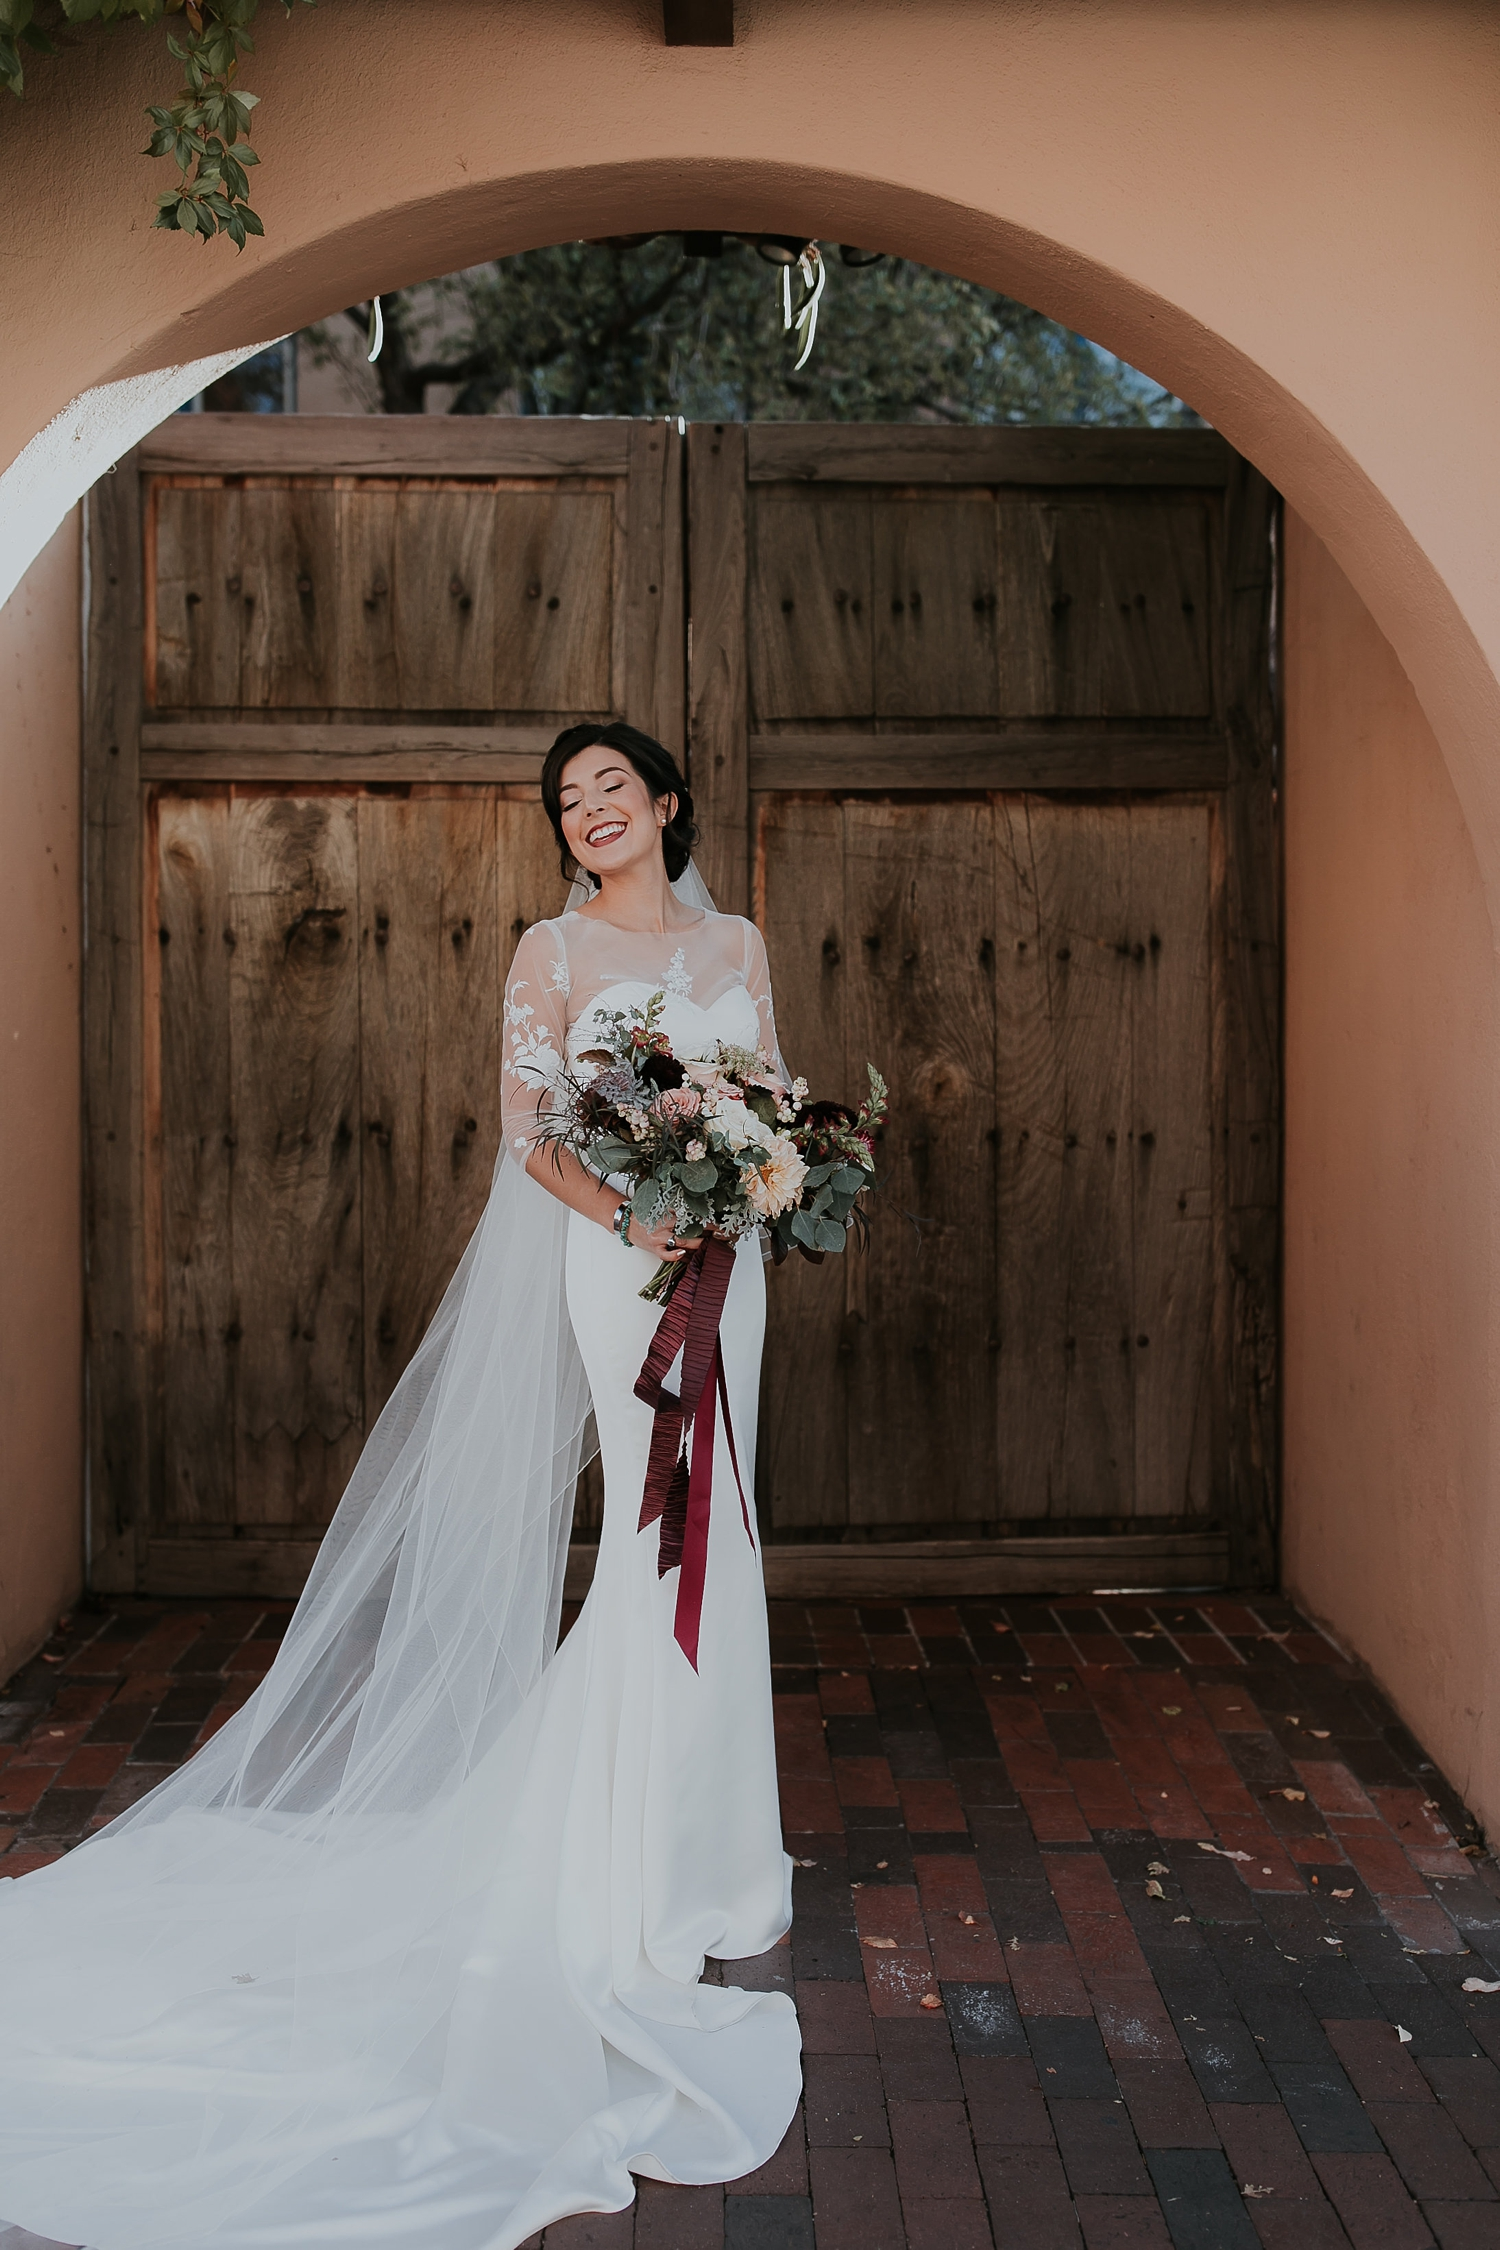 Alicia+lucia+photography+-+albuquerque+wedding+photographer+-+santa+fe+wedding+photography+-+new+mexico+wedding+photographer+-+la+fonda+santa+fe+wedding+-+santa+fe+fall+wedding+-+la+fonda+fall+wedding_0036.jpg